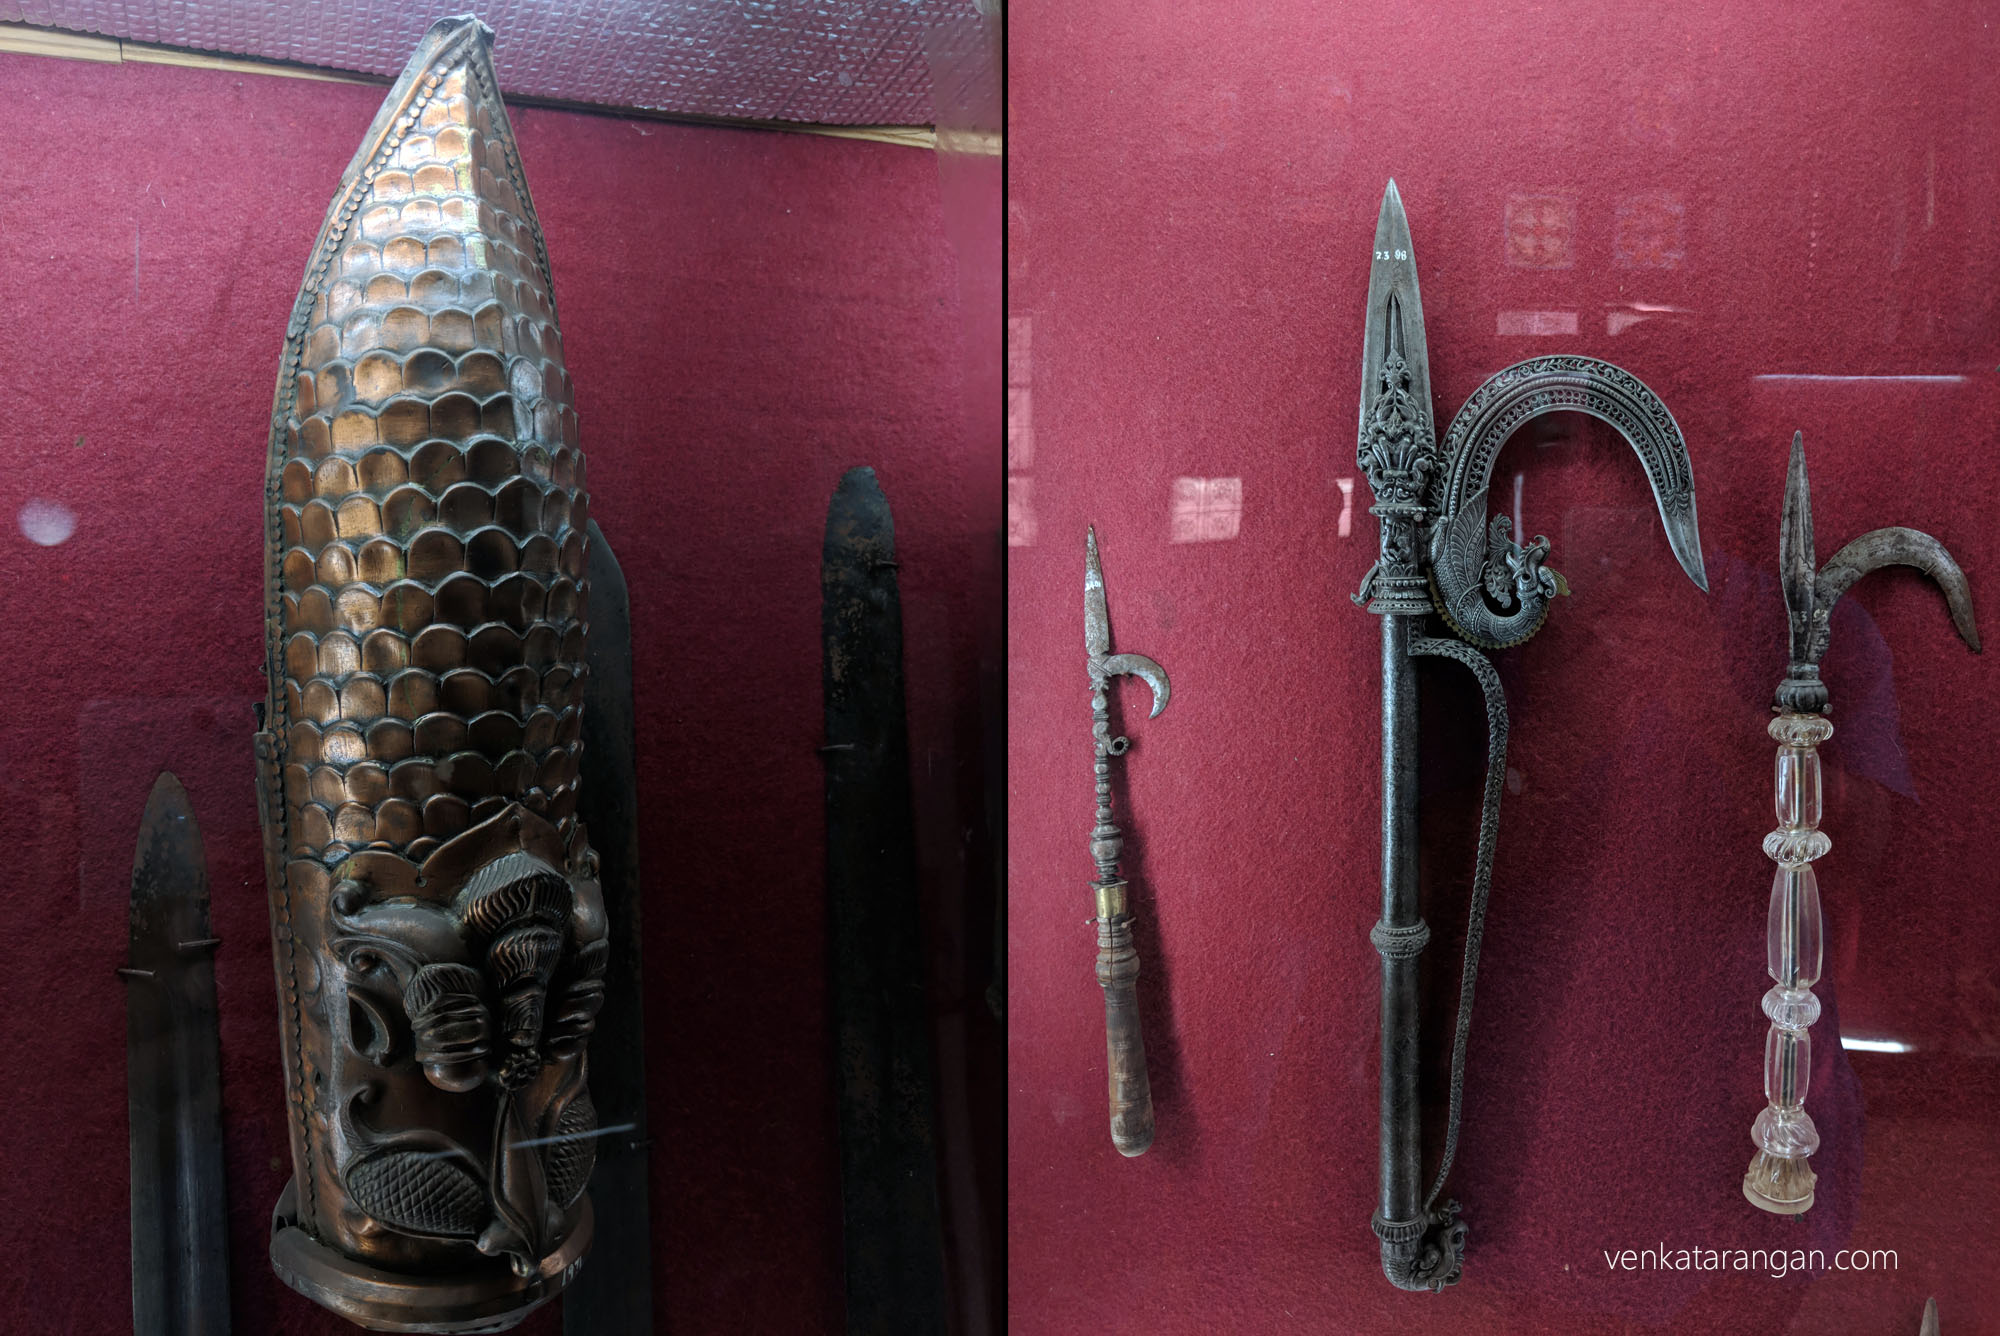 Left-Gauntlet (கையுறை). Right-Axes